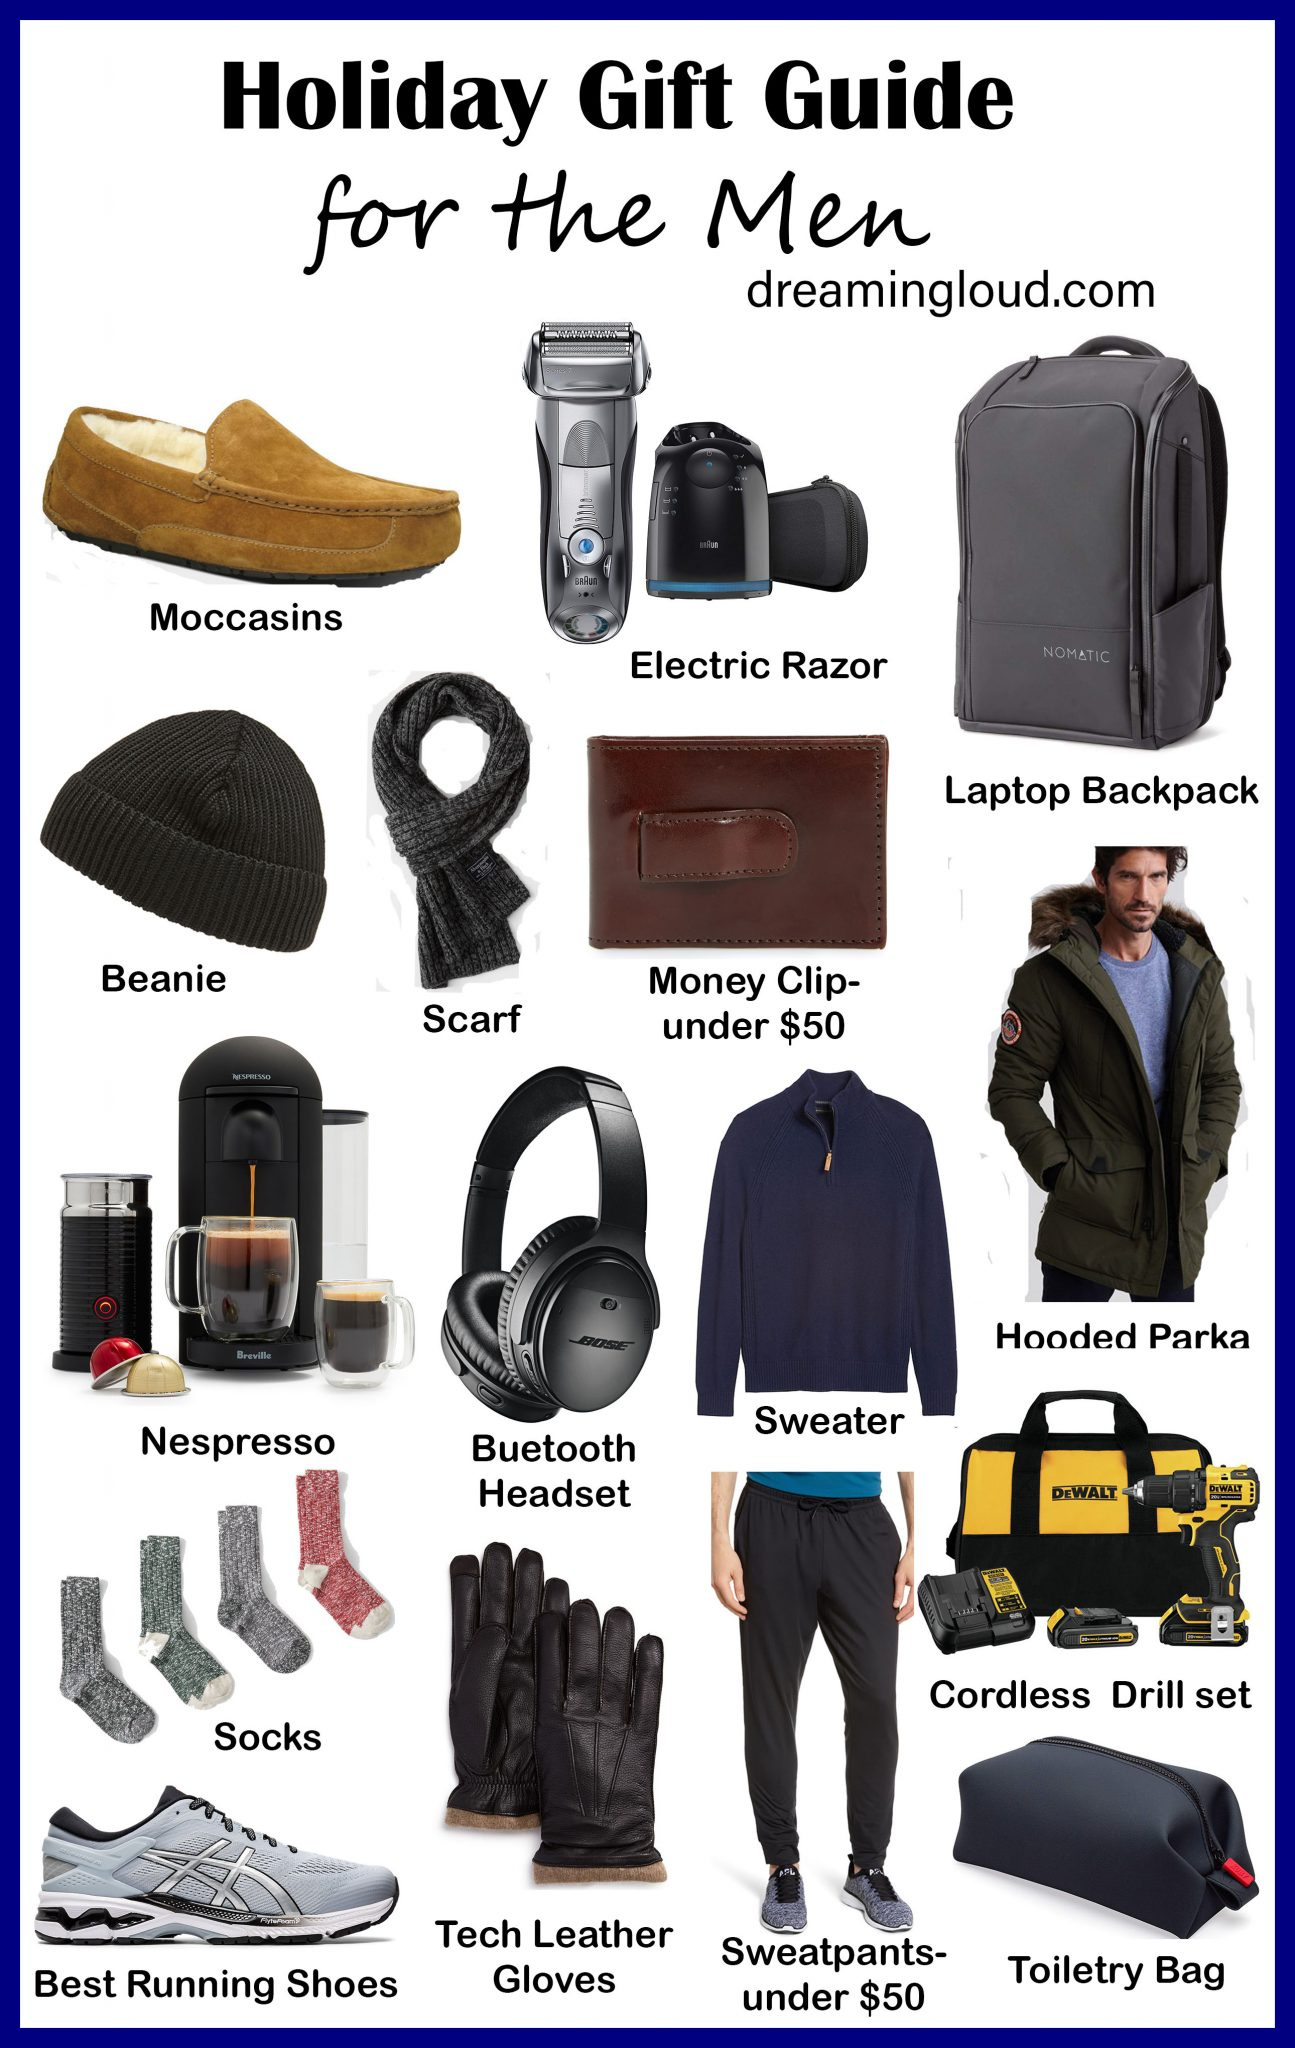 Holiday Gift Guide Best Gifts For Men 2019 Dreaming Loud